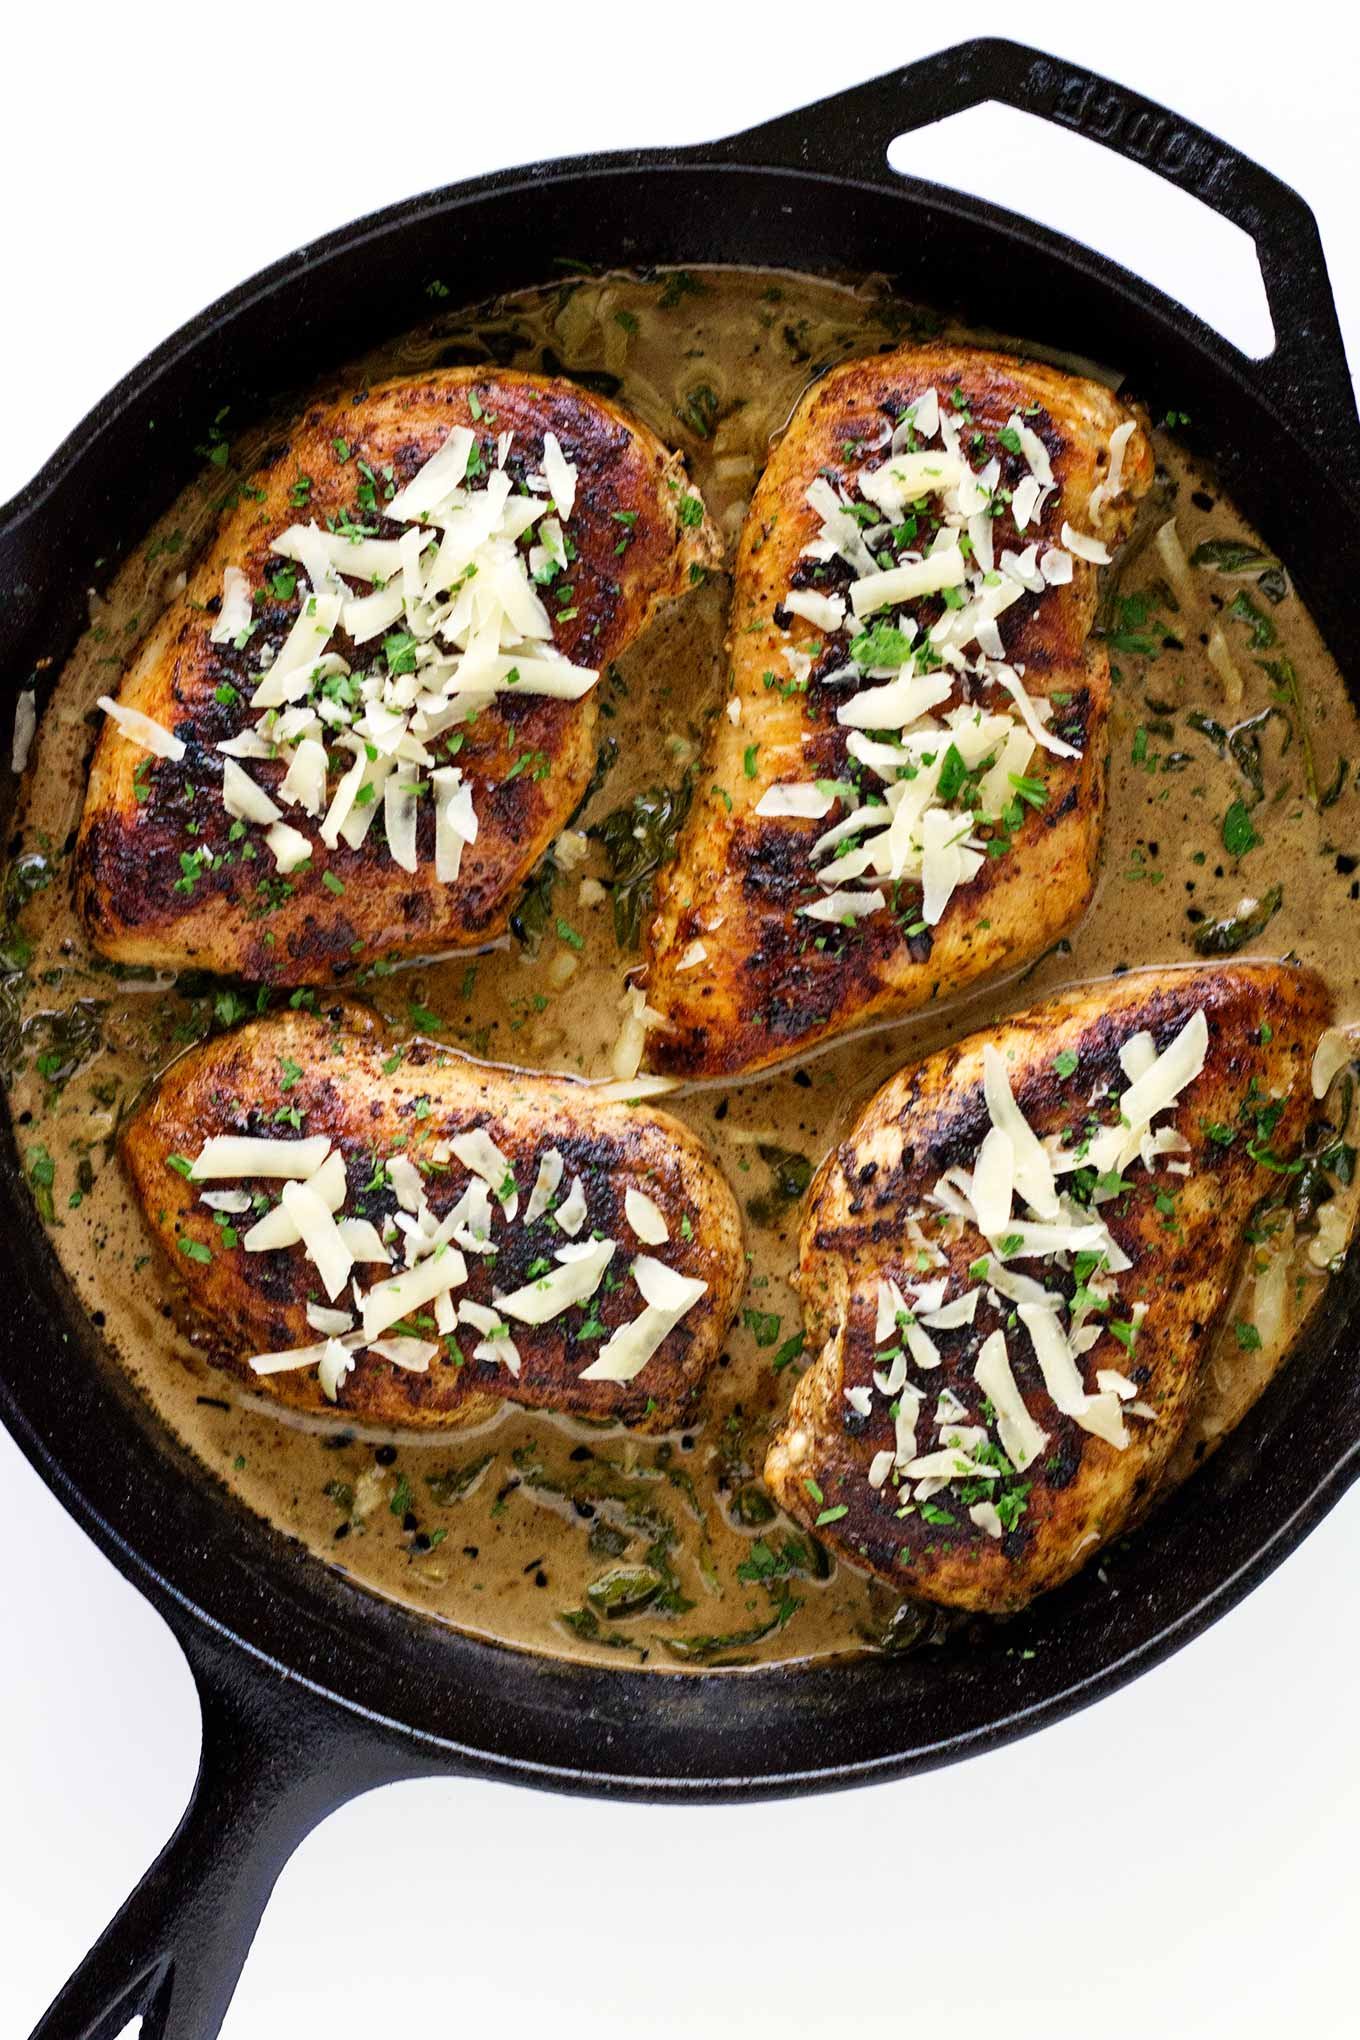 These chicken breasts are seasoned and seared to perfection then placed in a delicious lemon butter parmesan garlic cream sauce. And it's all made in one skillet and will leave you drooling for more!